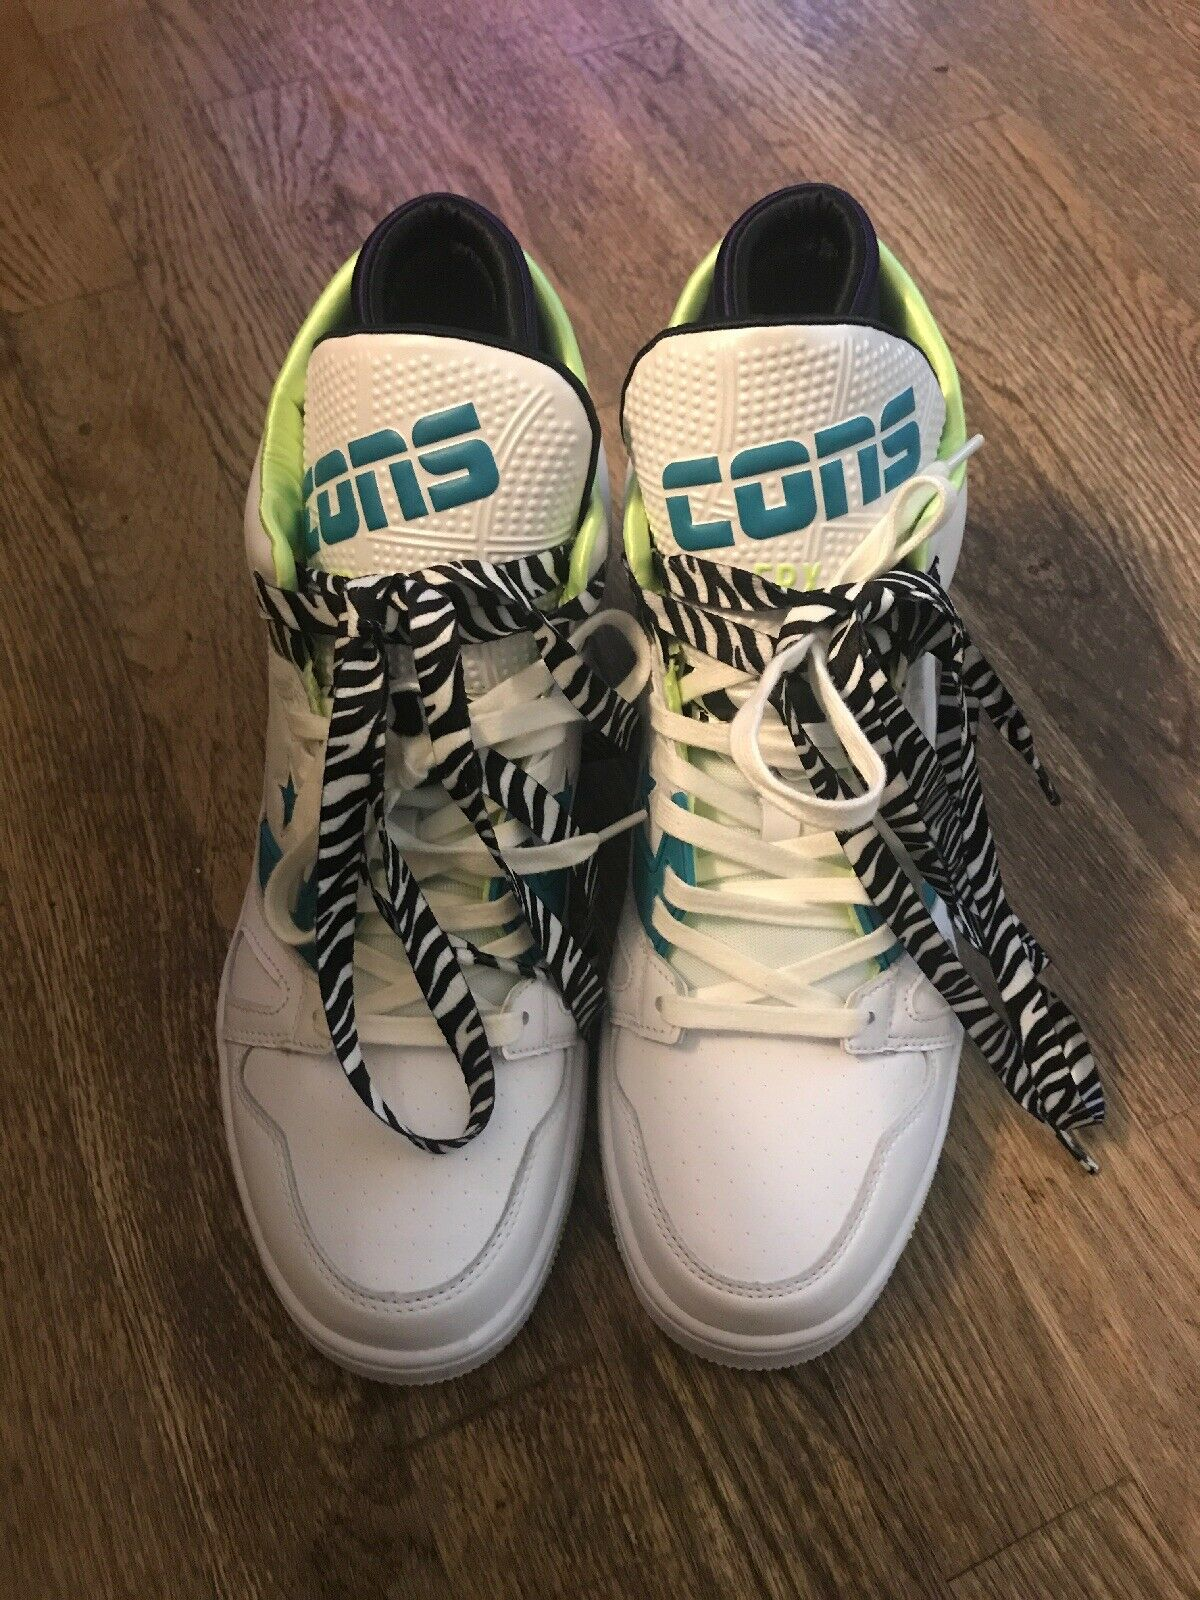 NEW MEN'S Converse CONS- ERX-260 RETRO Basketball shoes LEATHER ZEBRA SIZE 9